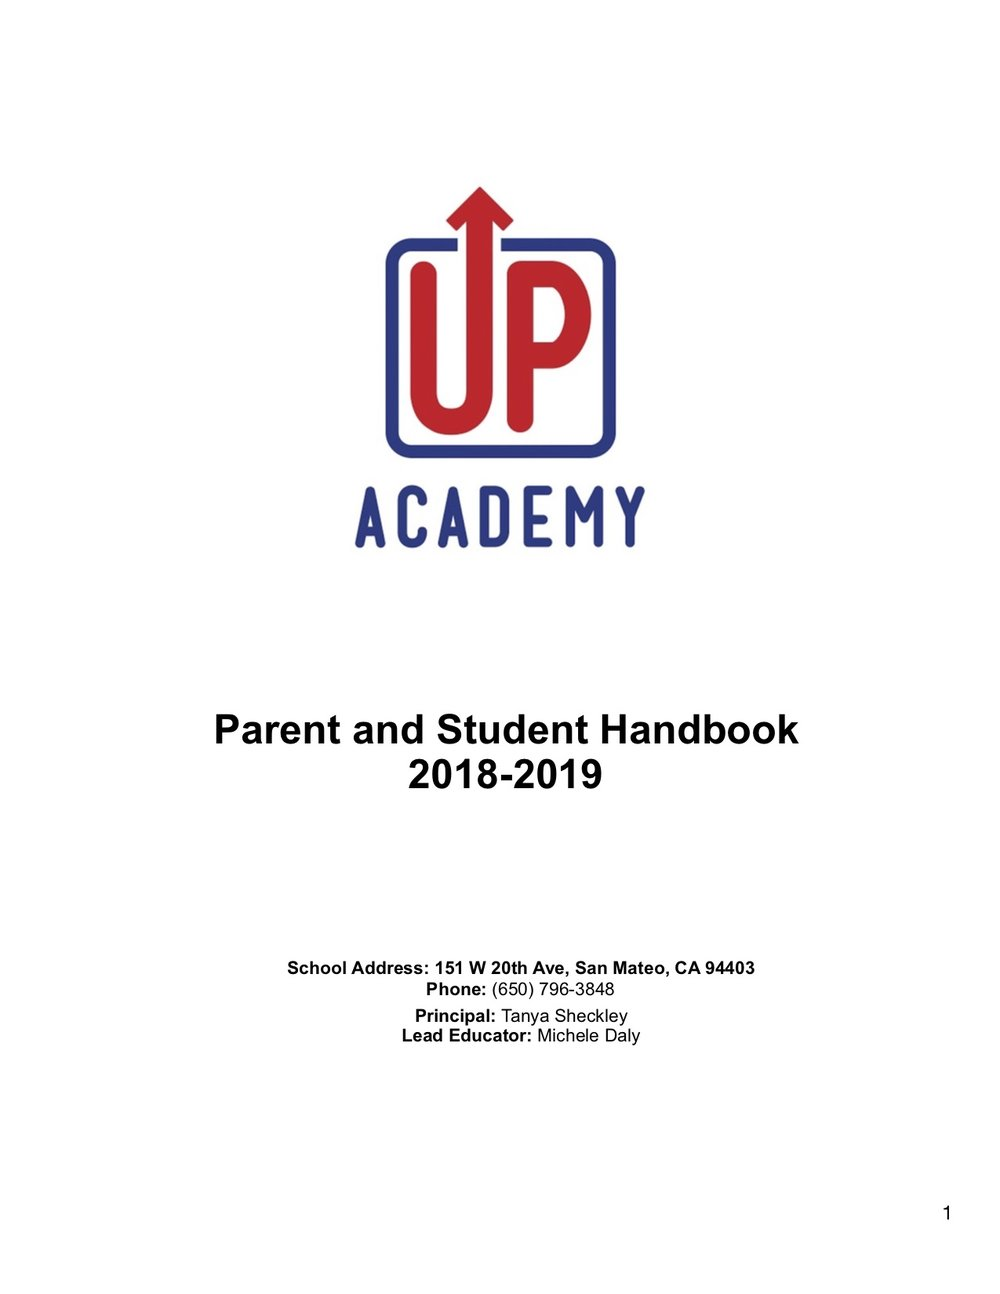 18-19 Parent and Student Handbook V4.jpg